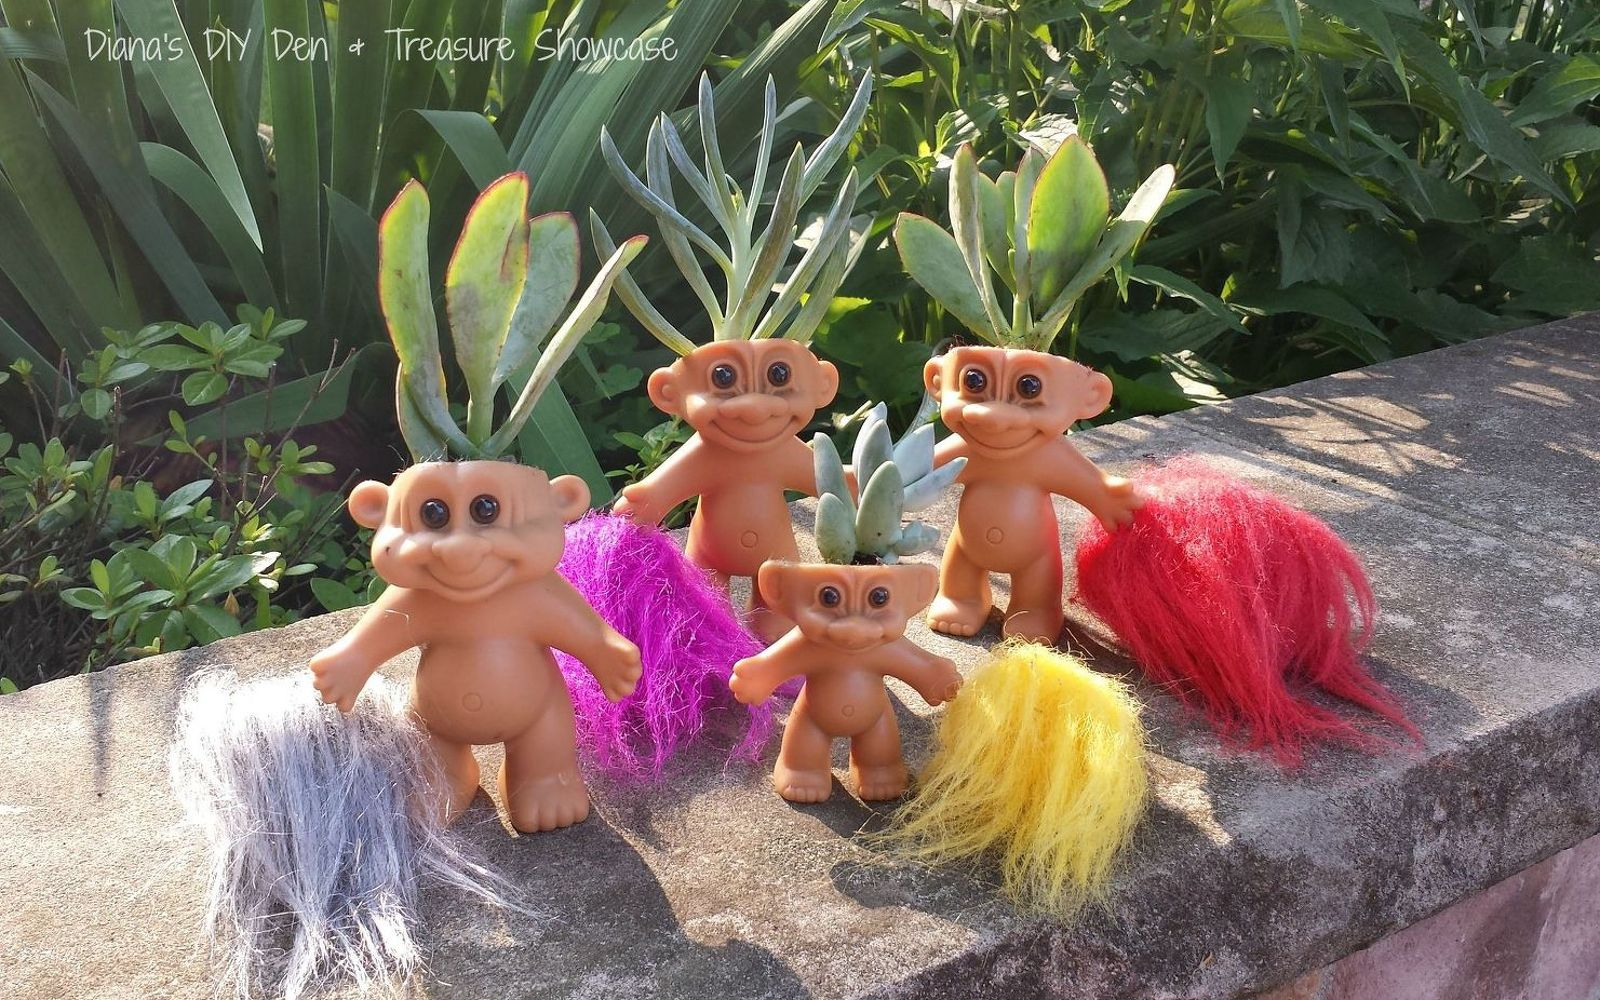 s 17 insanely fun ways to display your favorite succulents, flowers, gardening, succulents, Plant them in a group of troll dolls